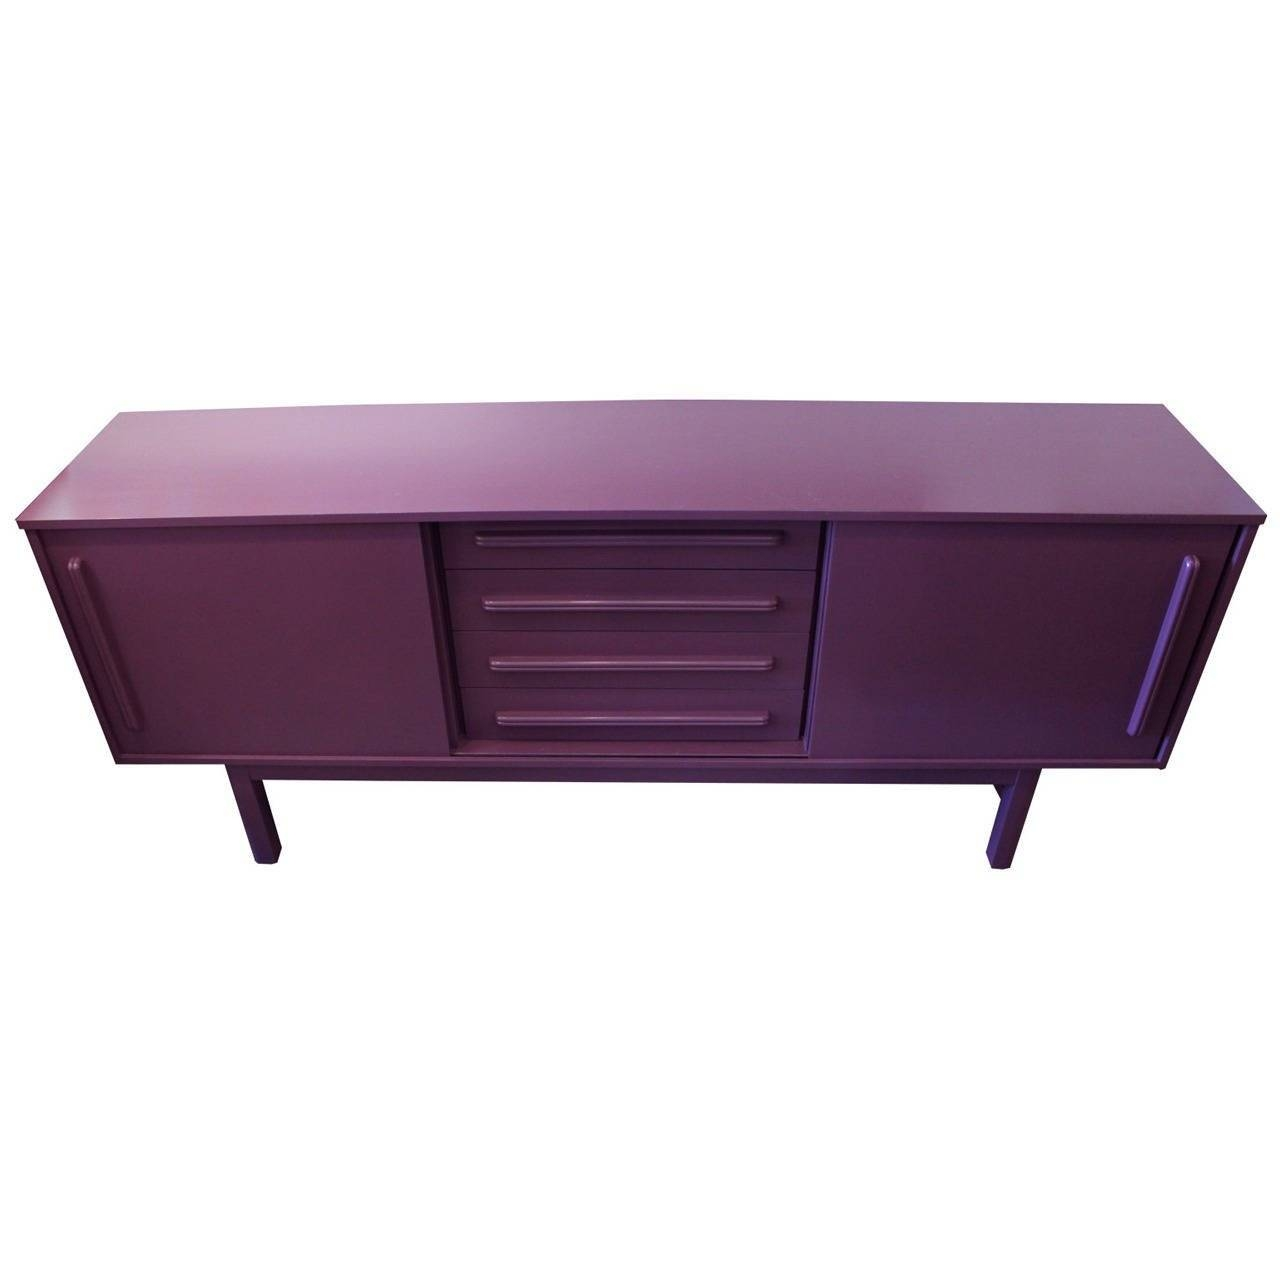 Purple Credenza Images - Reverse Search with regard to Purple Sideboards (Image 21 of 30)